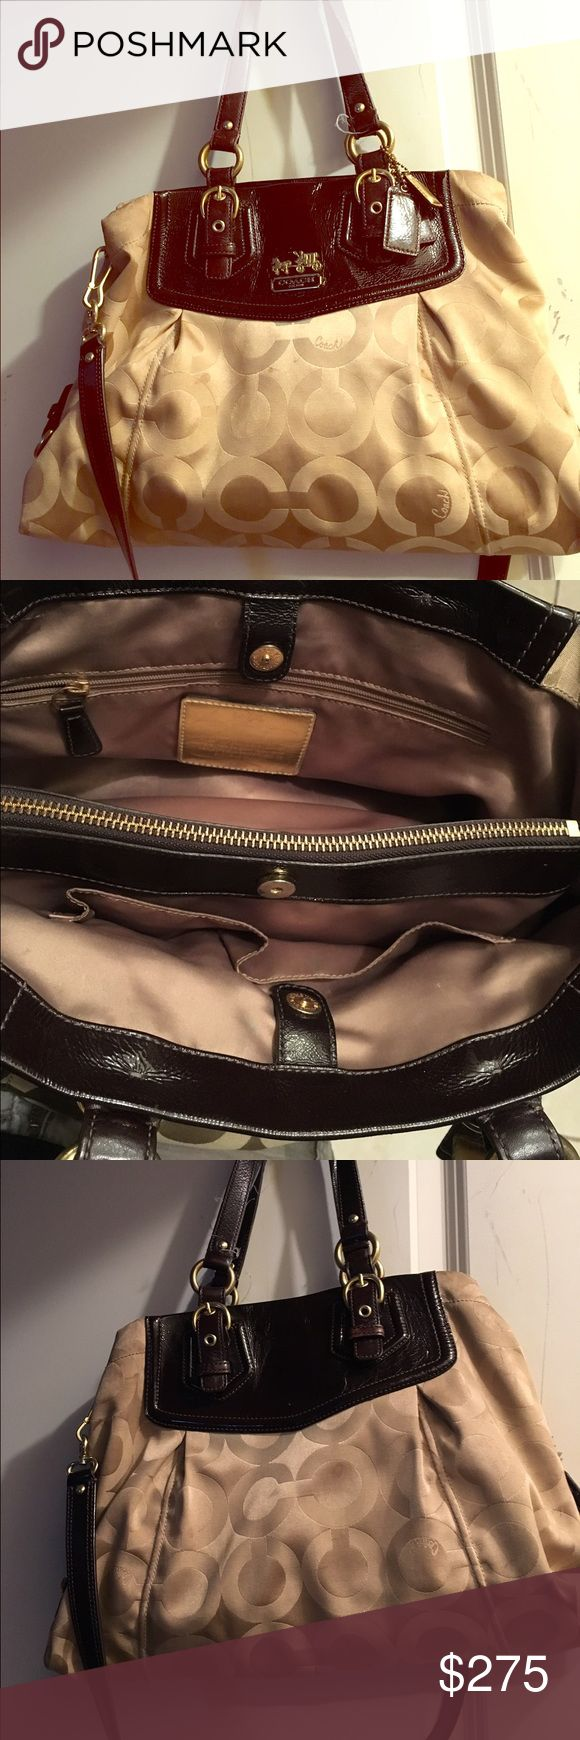 Authentic coach purse Authentic coach purse in good condition just needs cleaning Coach Bags Shoulder Bags